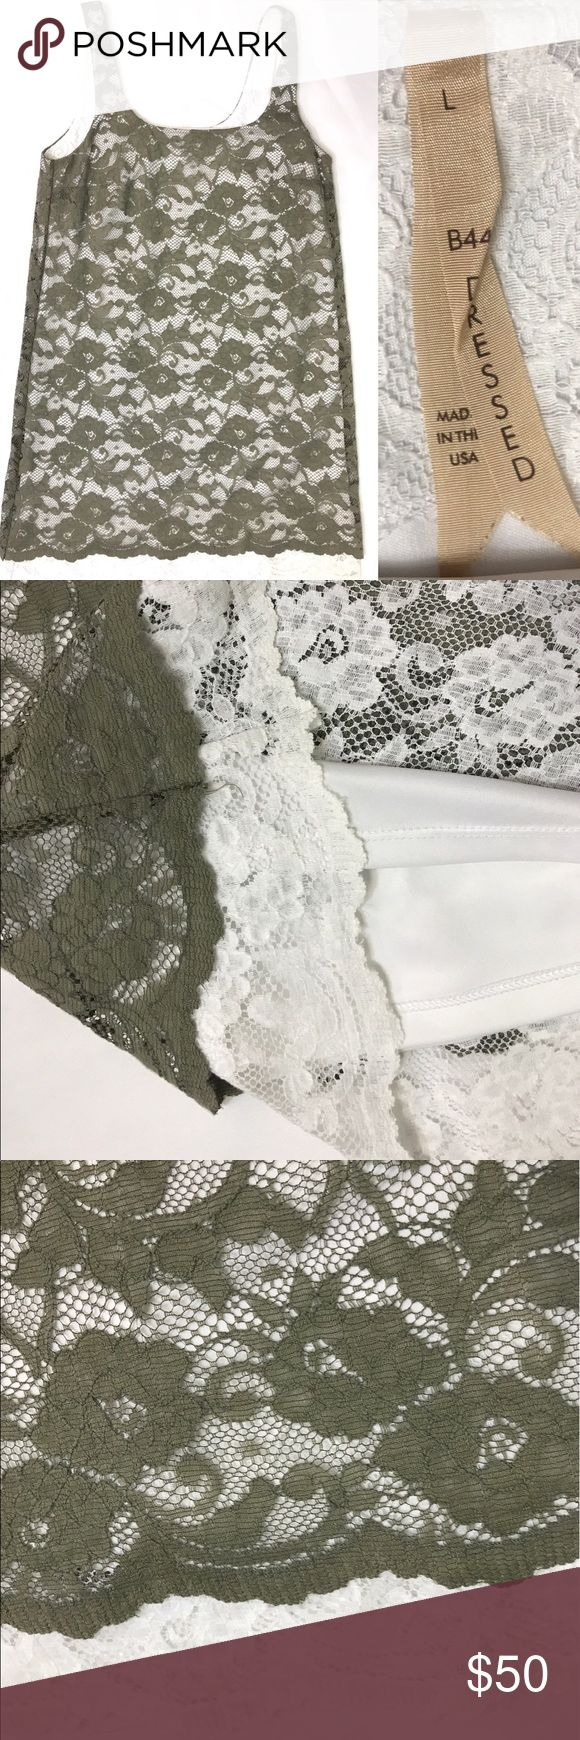 "Bailey 44 Dressed Olive Green White Lace Dress Gorgeous! Like new. Lace overlay tank dress. Solid white lining. Bottom is white Lace and peeks out at the hem. Top layer is olive green. Size large. 18"" across bust 35"" from shoulder to bottom hem. Made in the USA Bailey 44 Dresses"